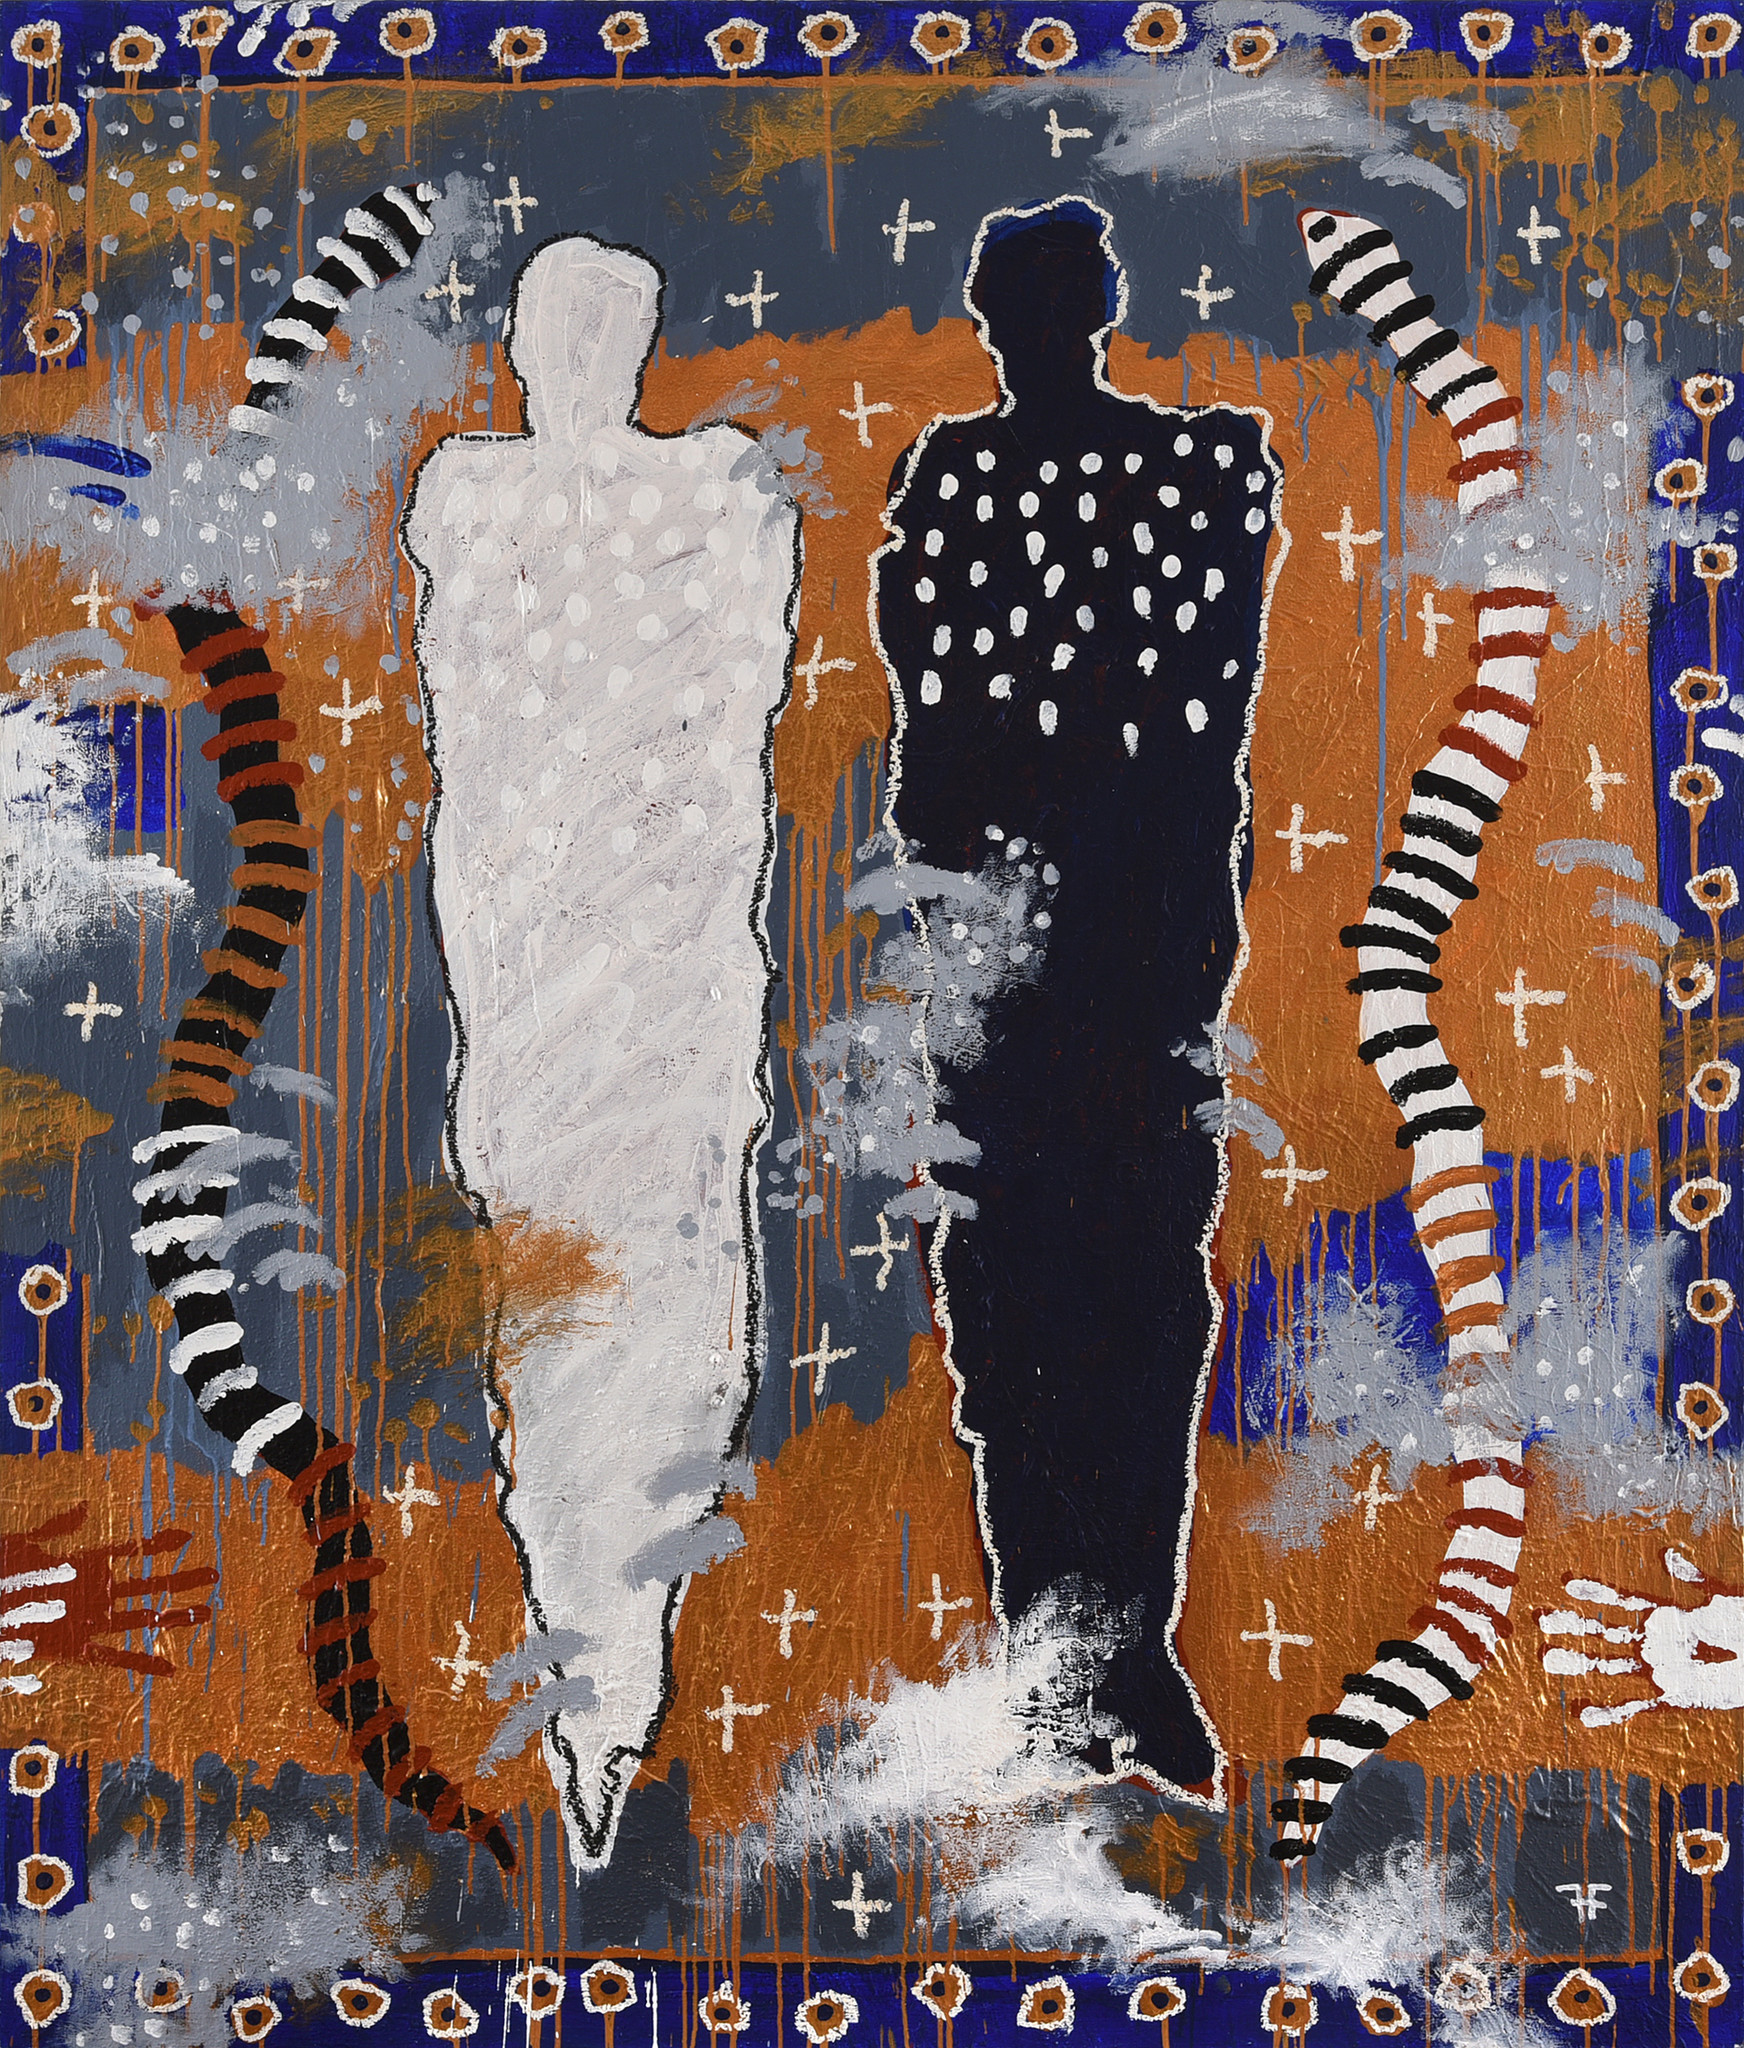 """Harry Fonseca's """"In the Silence of Dusk They Began to Shed Their Skin,"""" 1995. Mixed media on paper."""